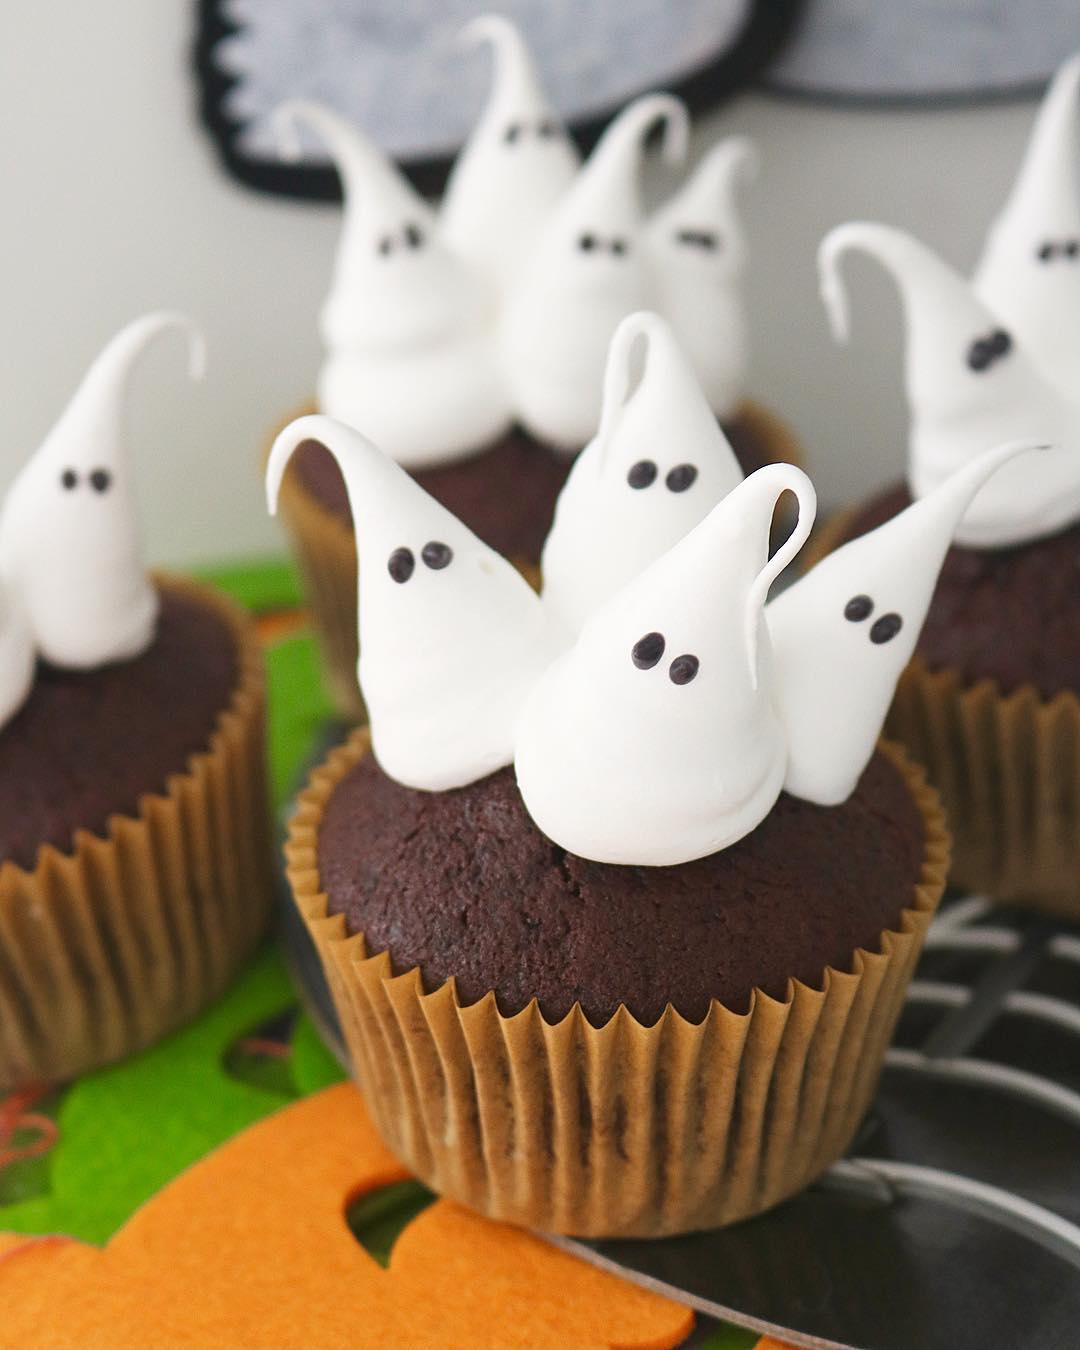 Cupcakes Fantasmas de Merengue